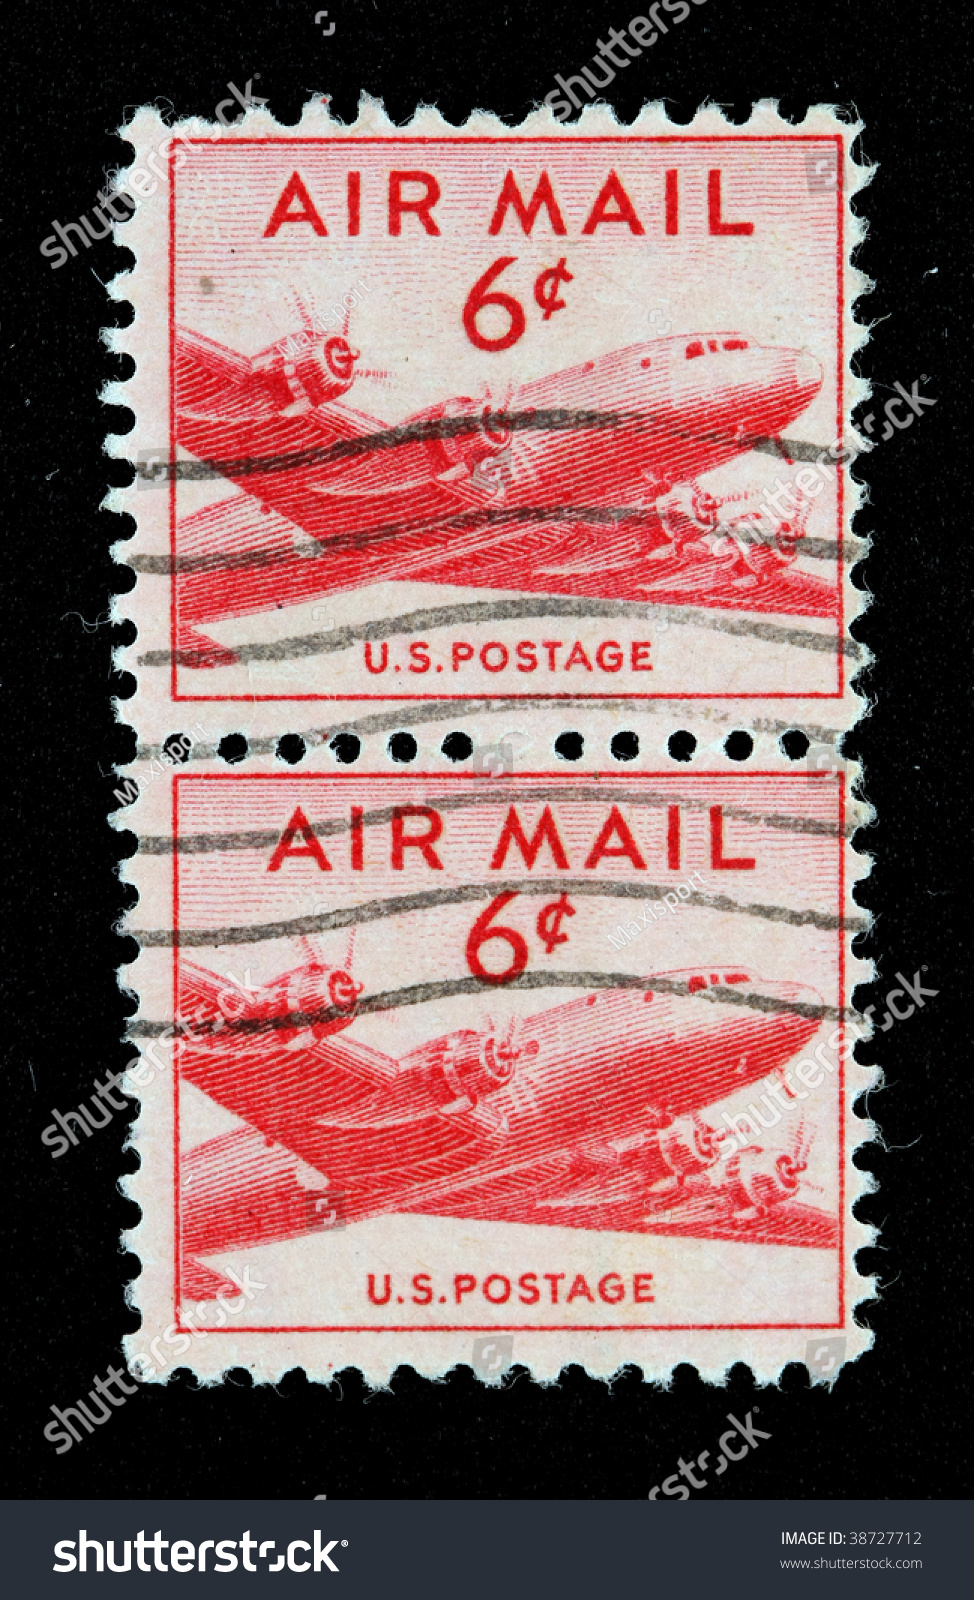 Two Vintage Us Air Mail Stamp With Airplane Six Cents